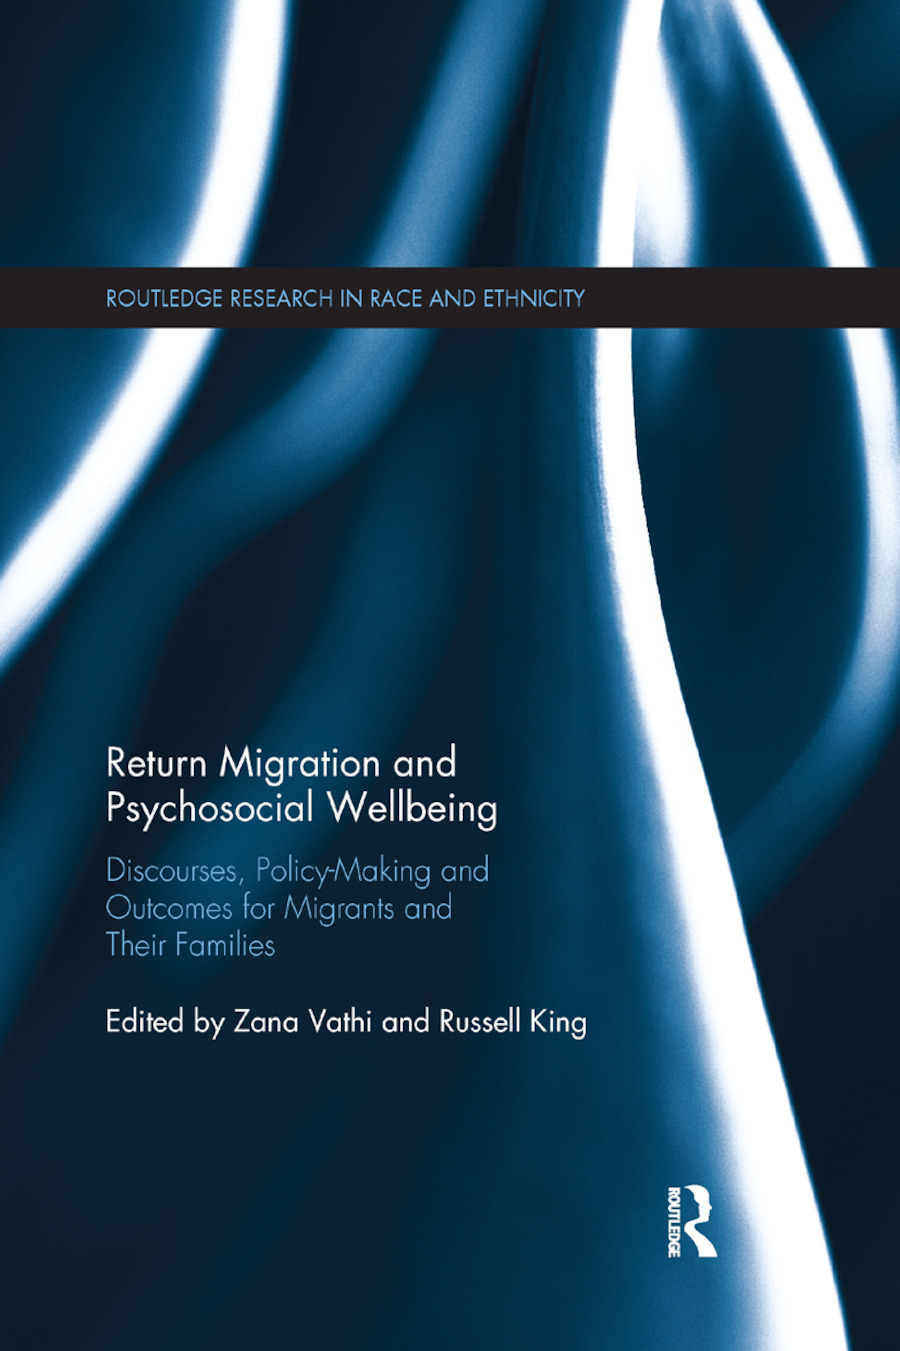 Return Migration and Psychosocial Wellbeing